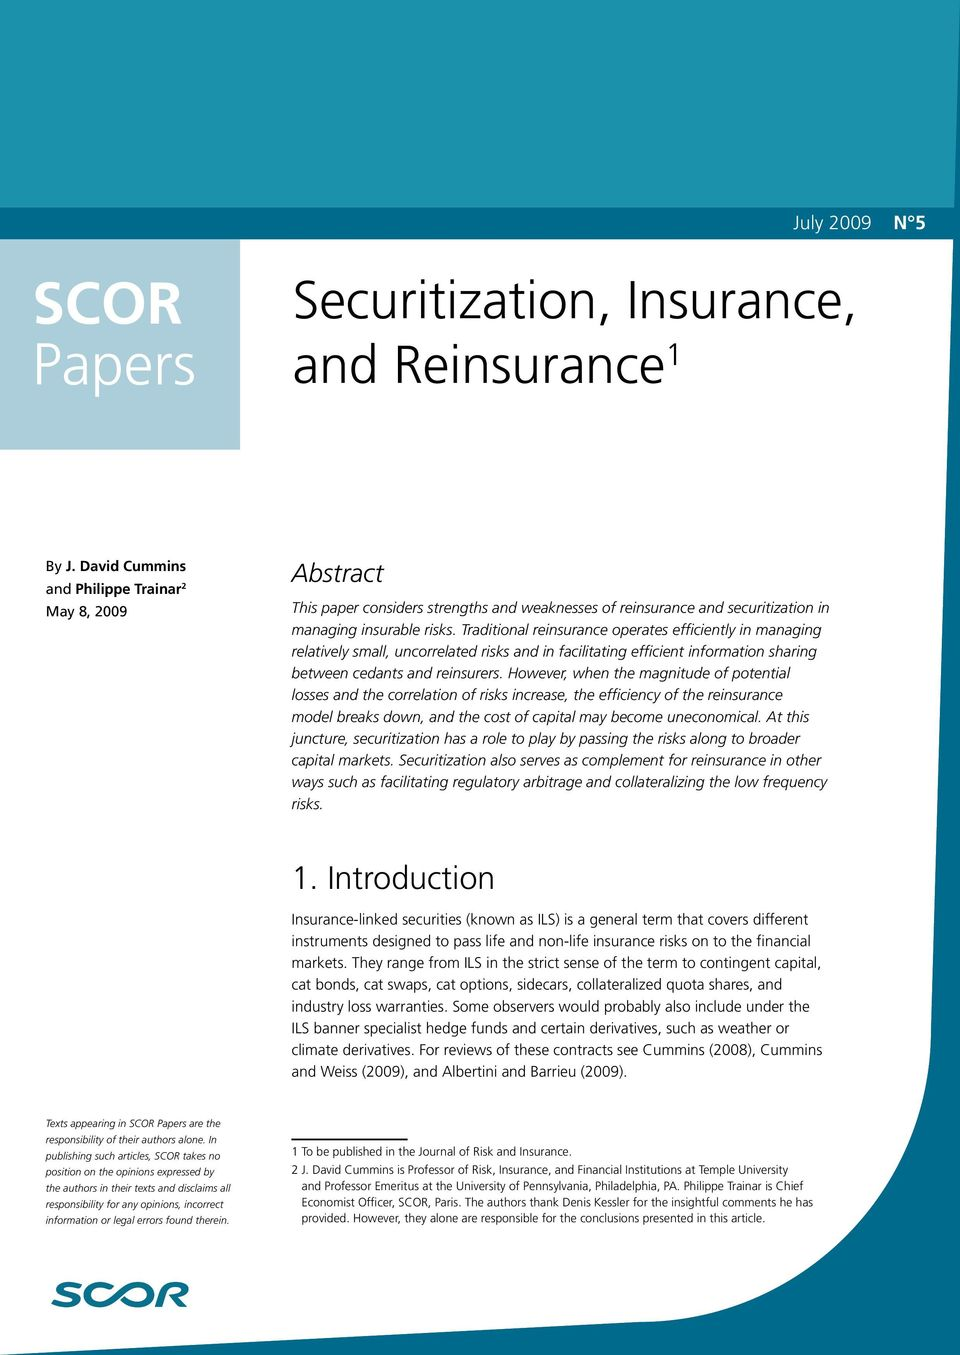 Traditional reinsurance operates efficiently in managing relatively small, uncorrelated risks and in facilitating efficient information sharing between cedants and reinsurers.